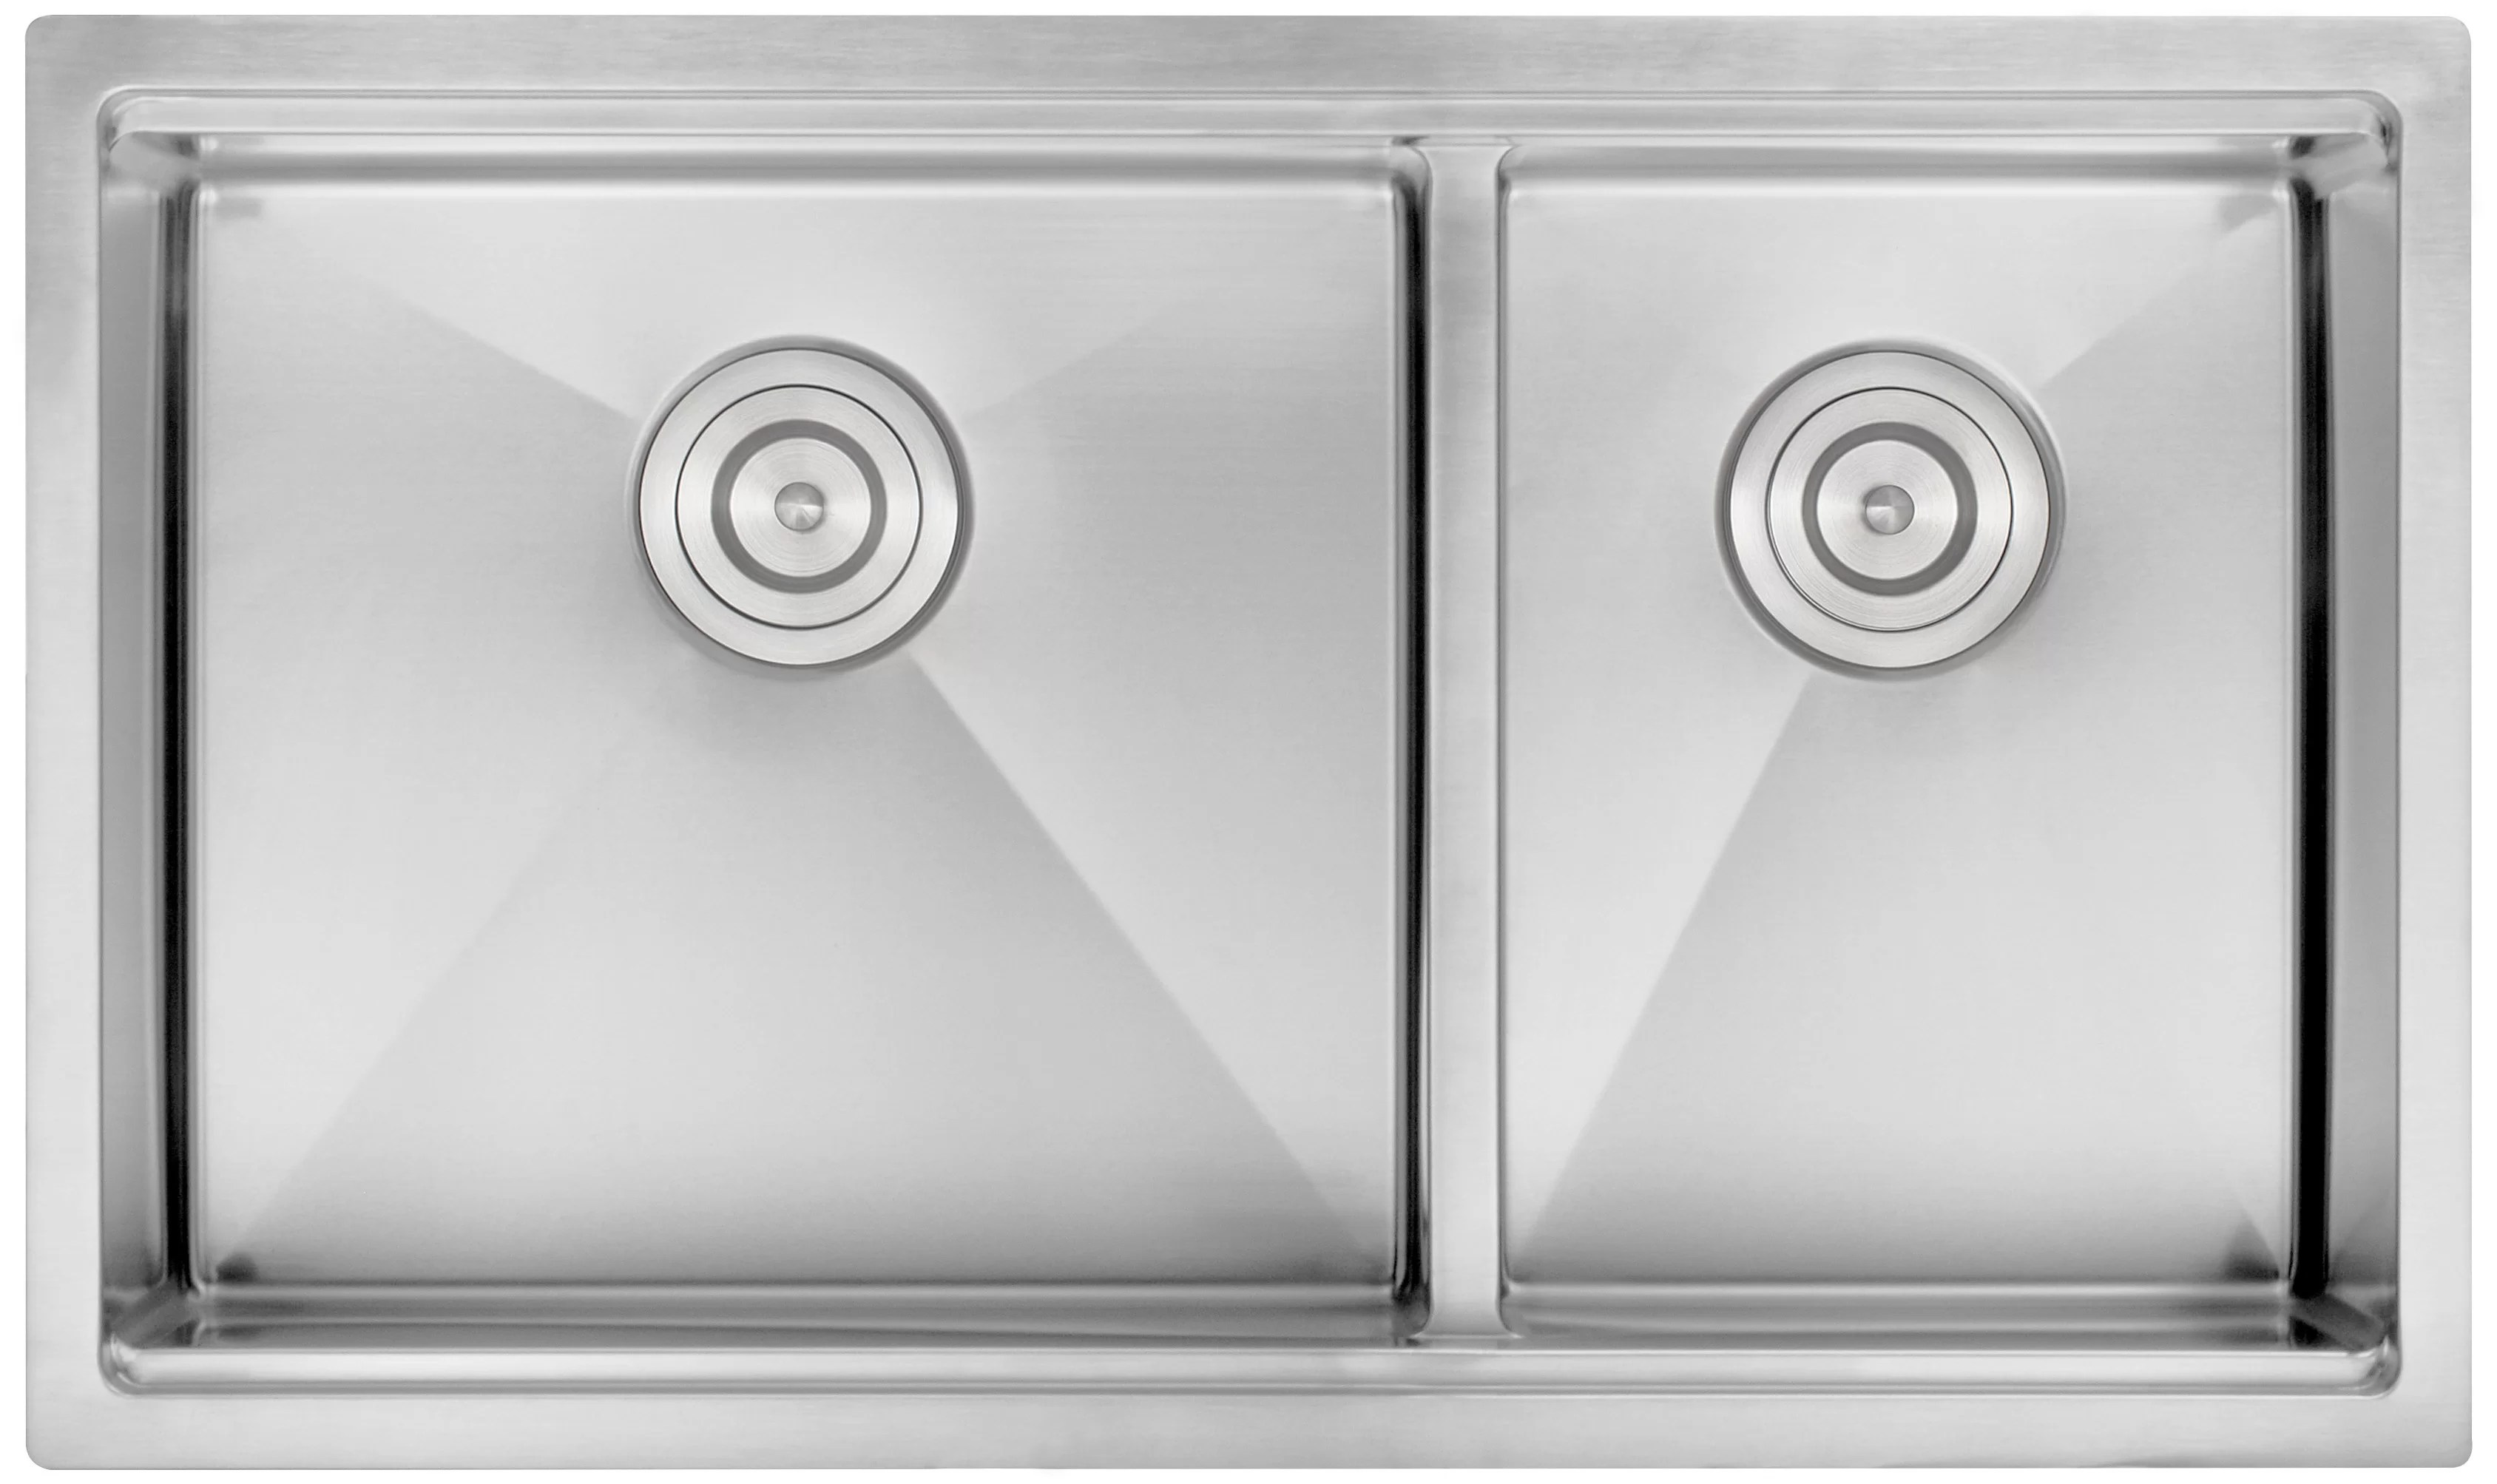 prestige series 32 l x 17 w double basin undermount kitchen sink with ledge and low divide